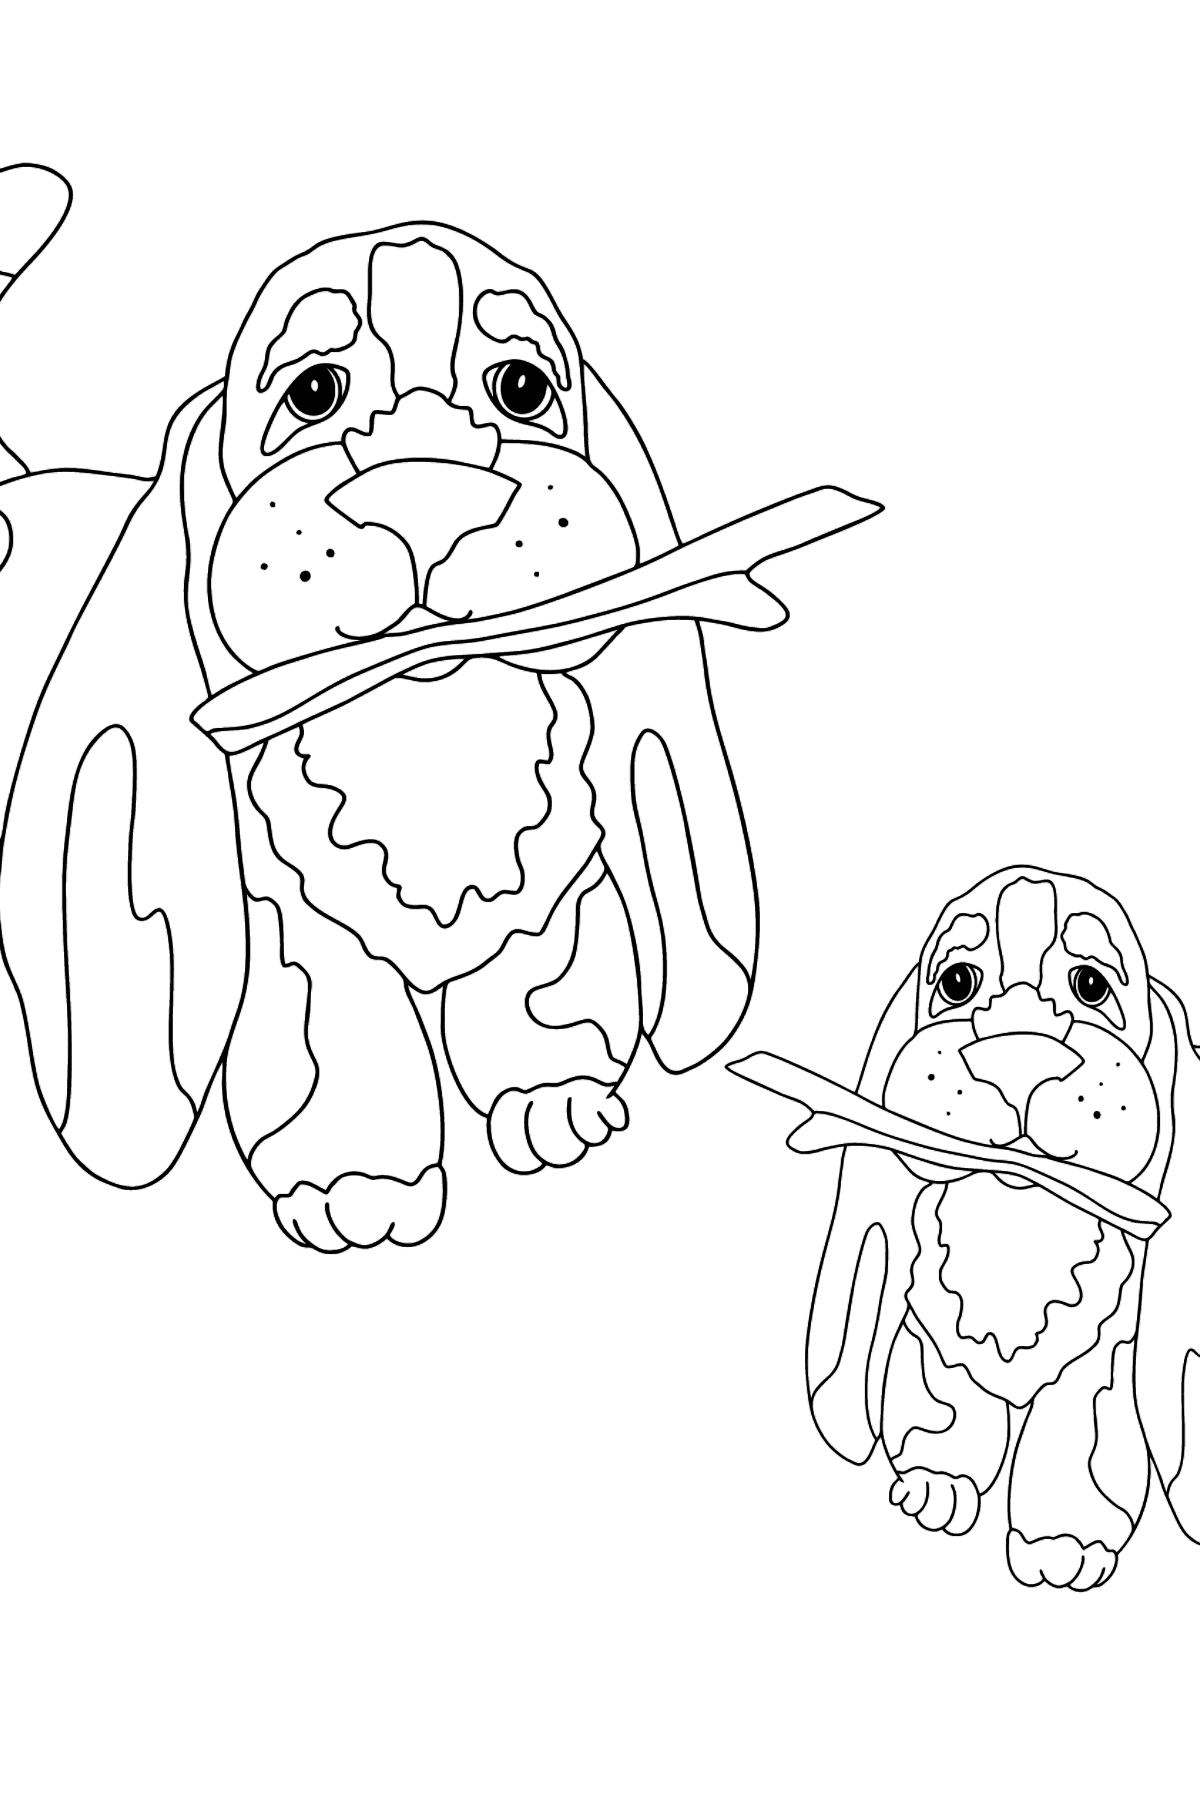 Coloring Page - Two Dogs are Playing with Sticks - Coloring Pages for Kids